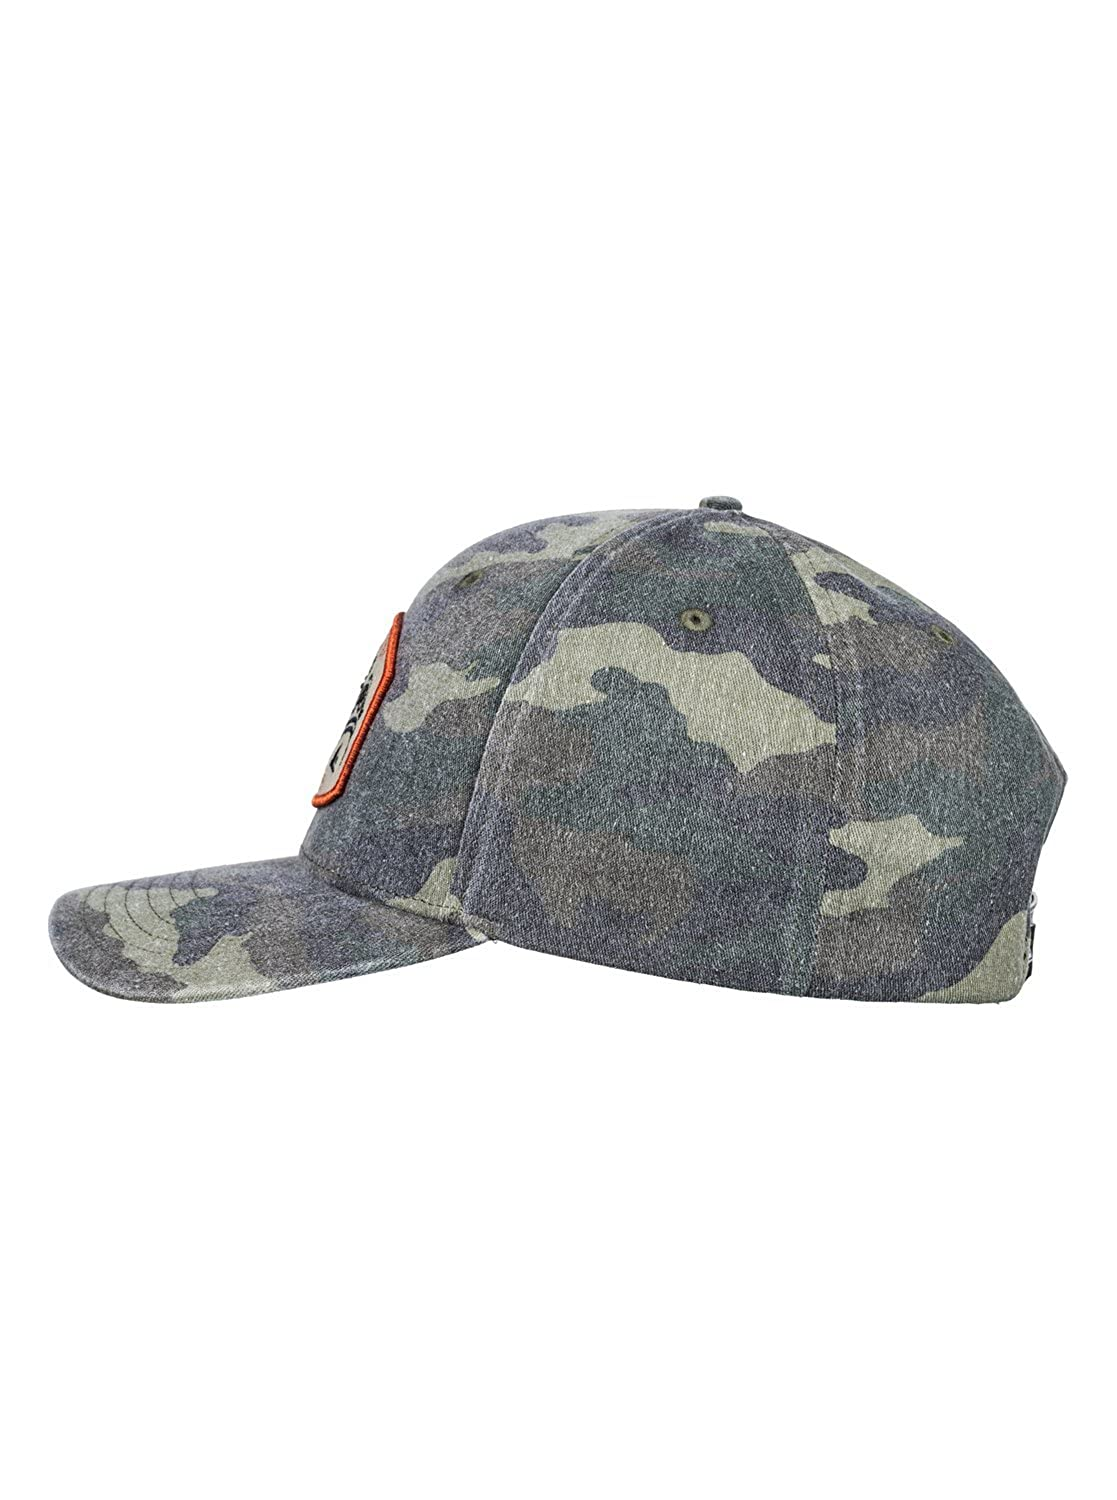 Quiksilver Mens Bull Hickey Hat